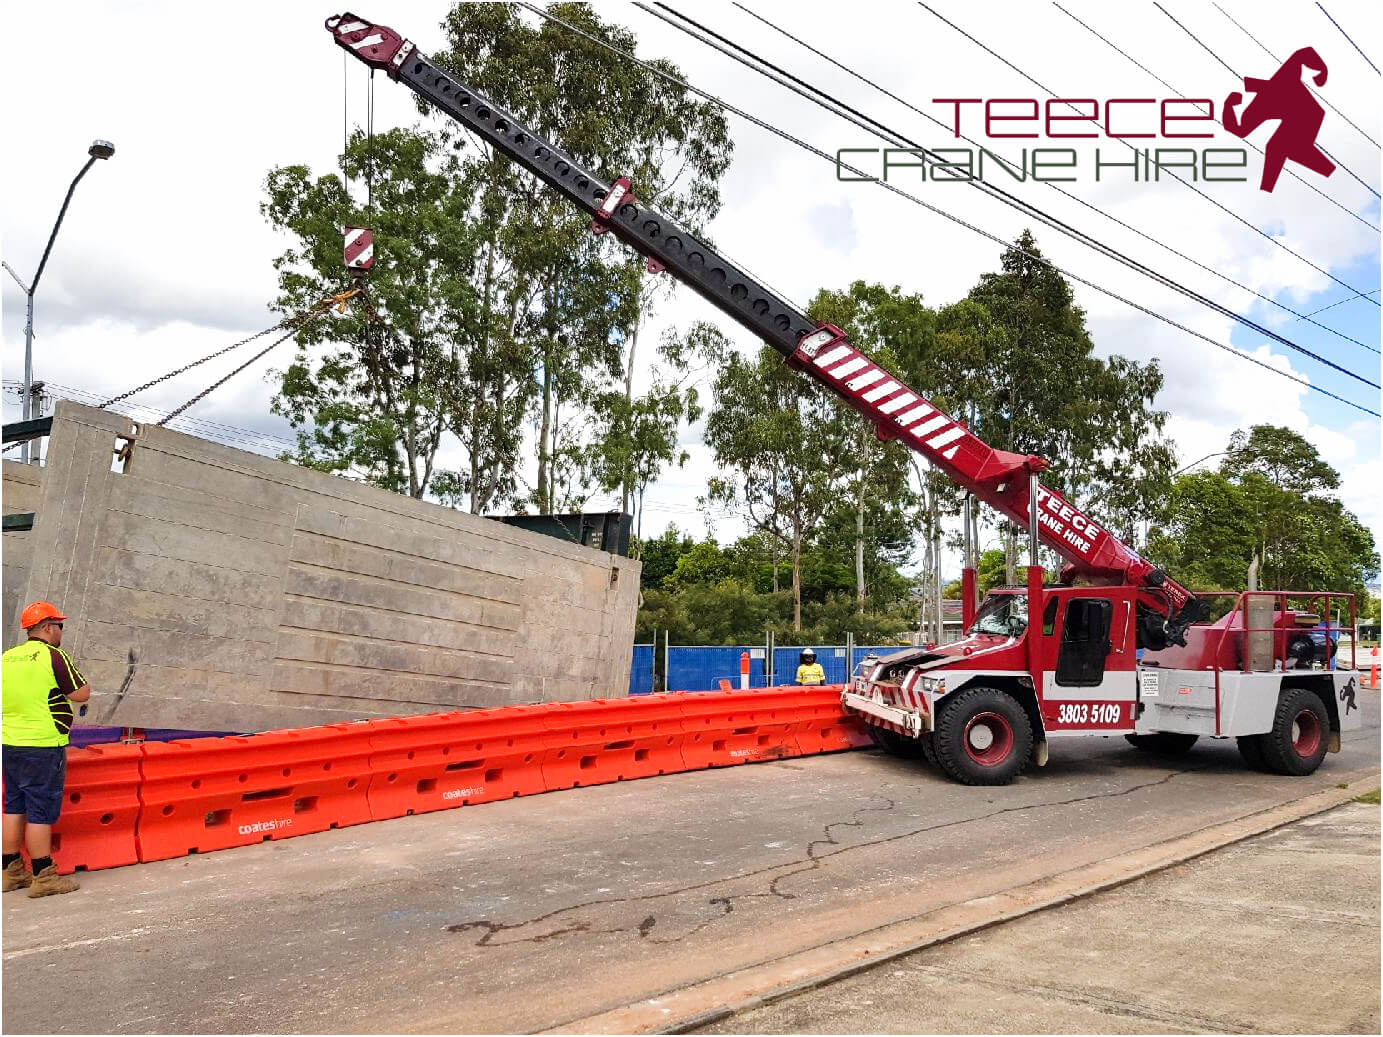 Teece Crane Hire - Hire On Site Constructing Townhouses In Brisbane 2 - Brisbane